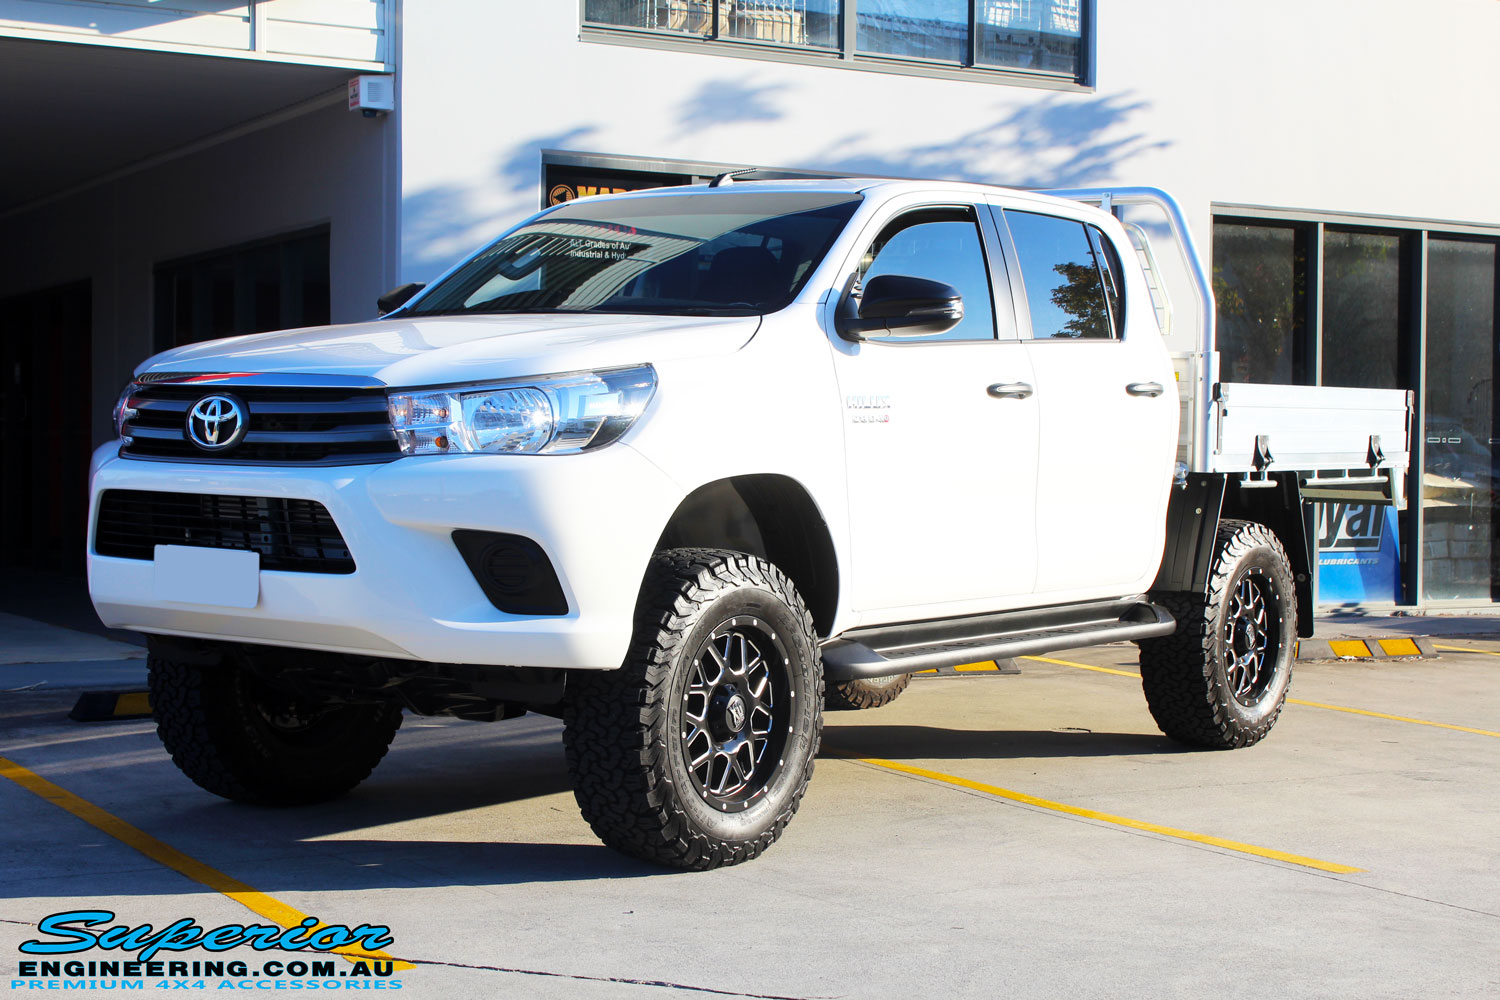 Left front side view of a Toyota Revo Hilux Dual Cab after fitment of Superior Upper Control Arms & a Diff Drop Kit